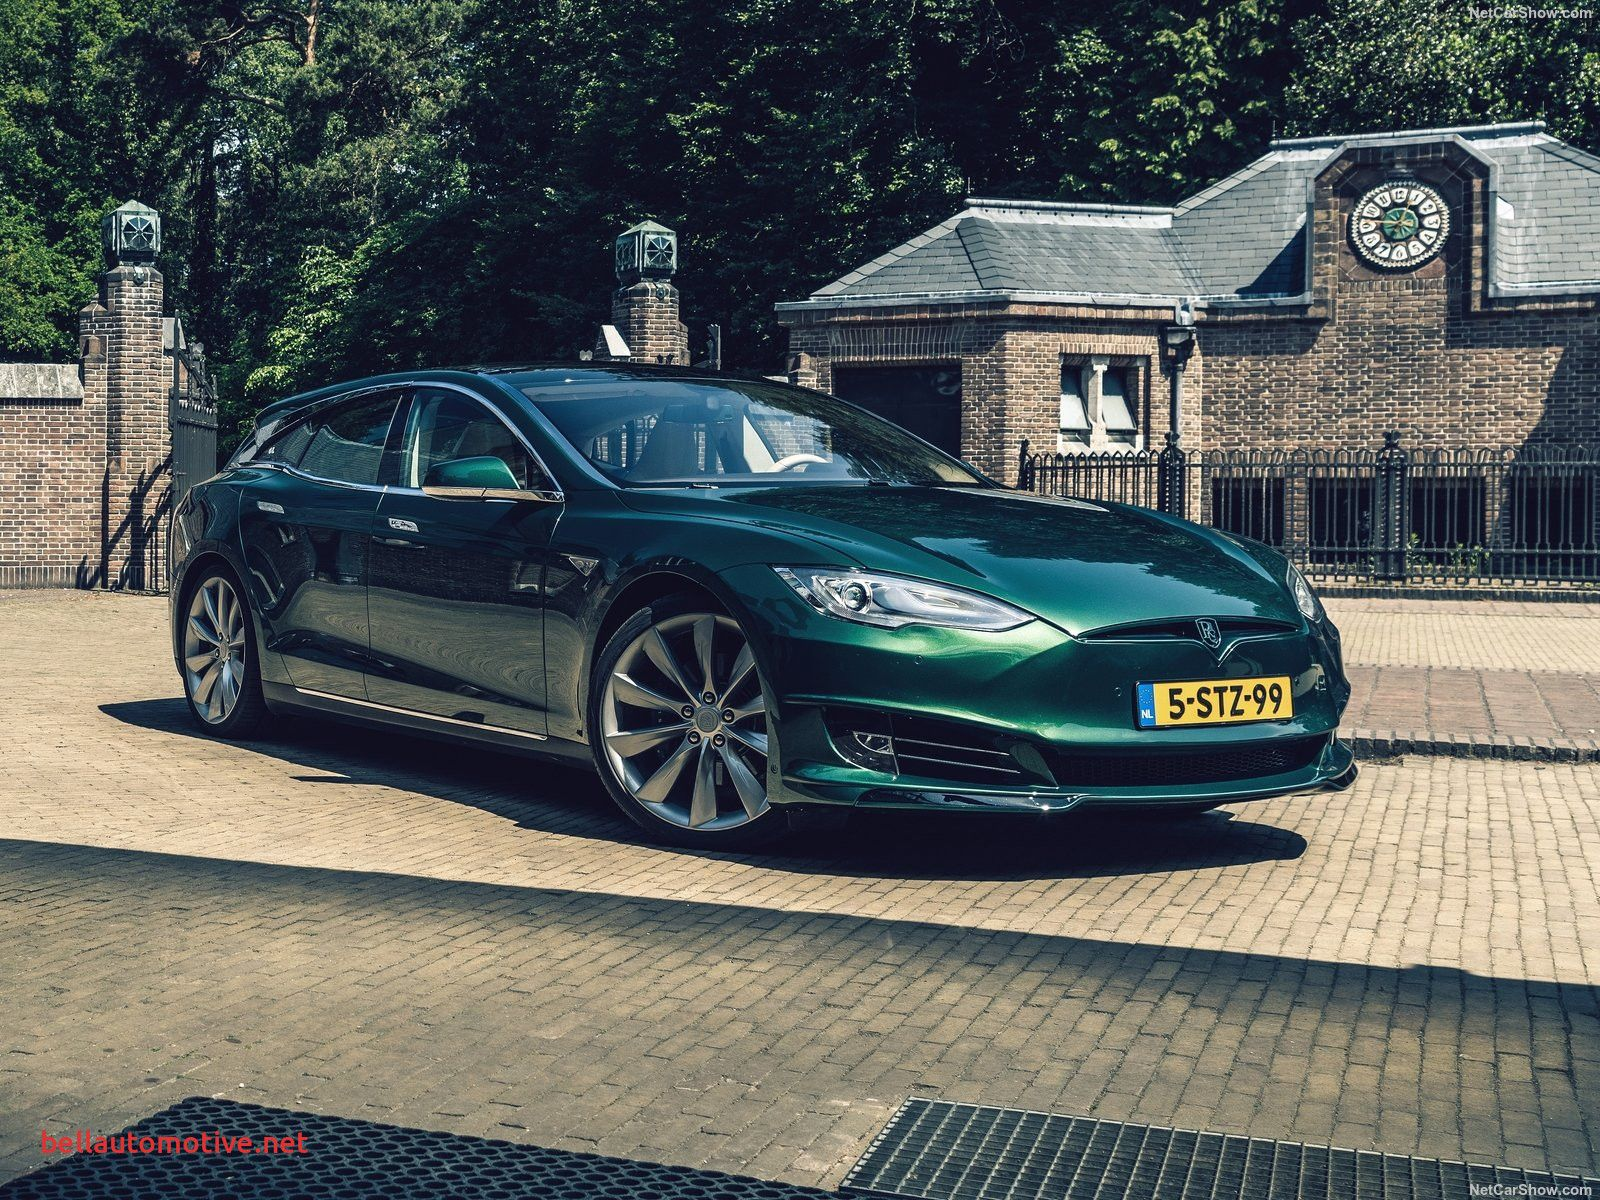 Tesla S 2018 Inspirational Tesla Model S Shooting Brake 2018 D D N D D D N Dºdµn D Nœnzd In 2020 Shooting Brake Tesla Model S Tesla Model